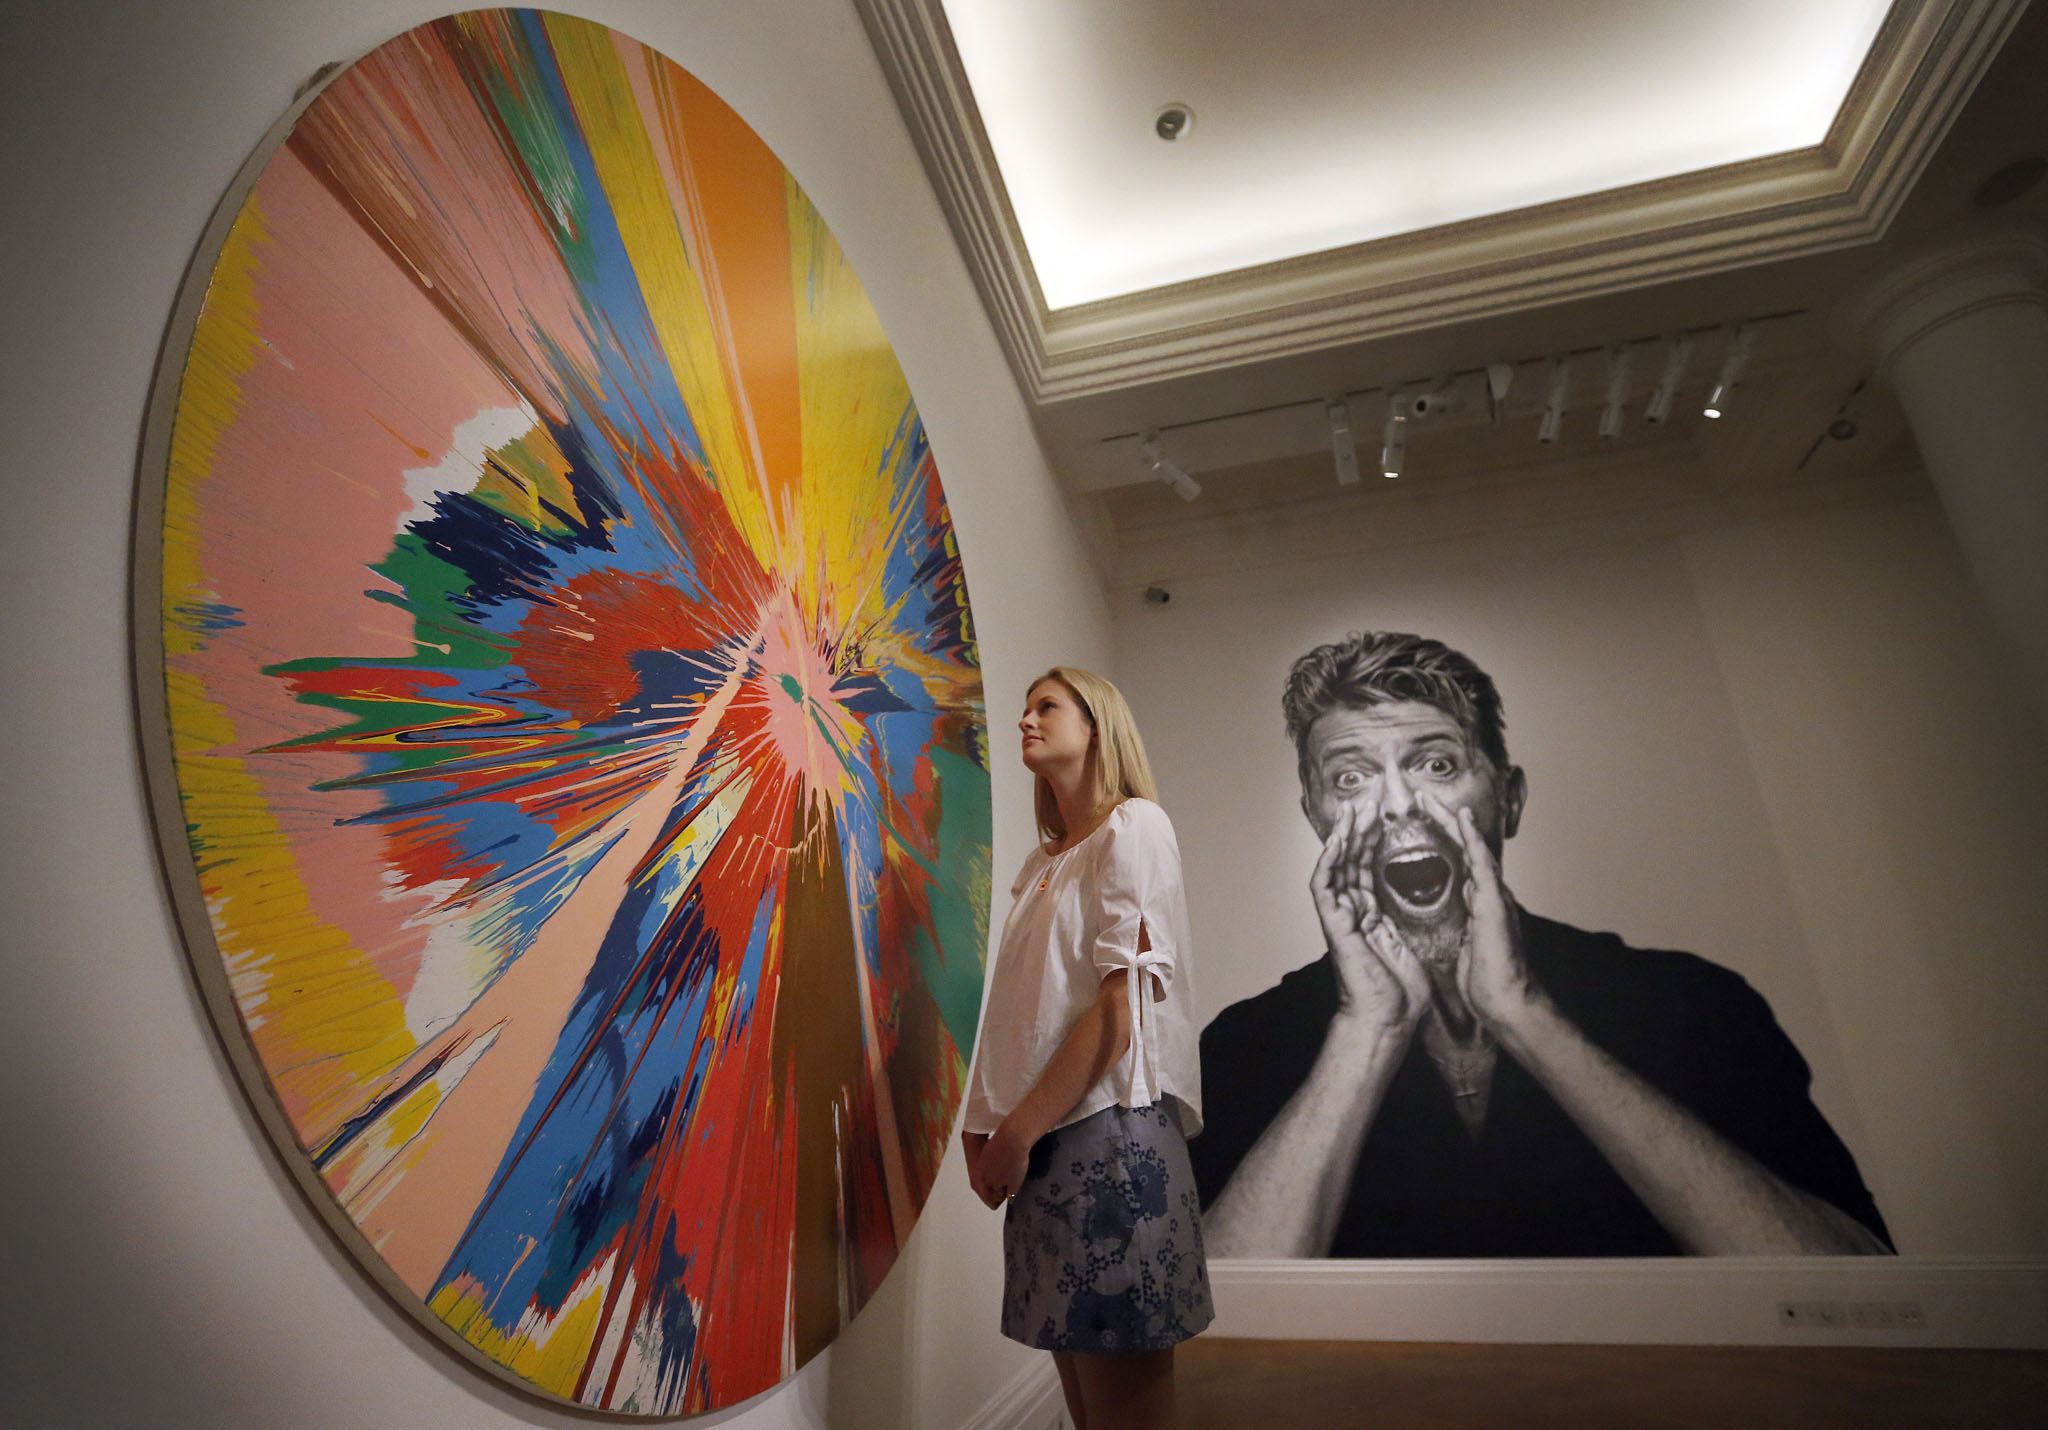 A woman looks at a painting by Damien Hirst in front of a portrait of David Bowie at Sotheby's in London.